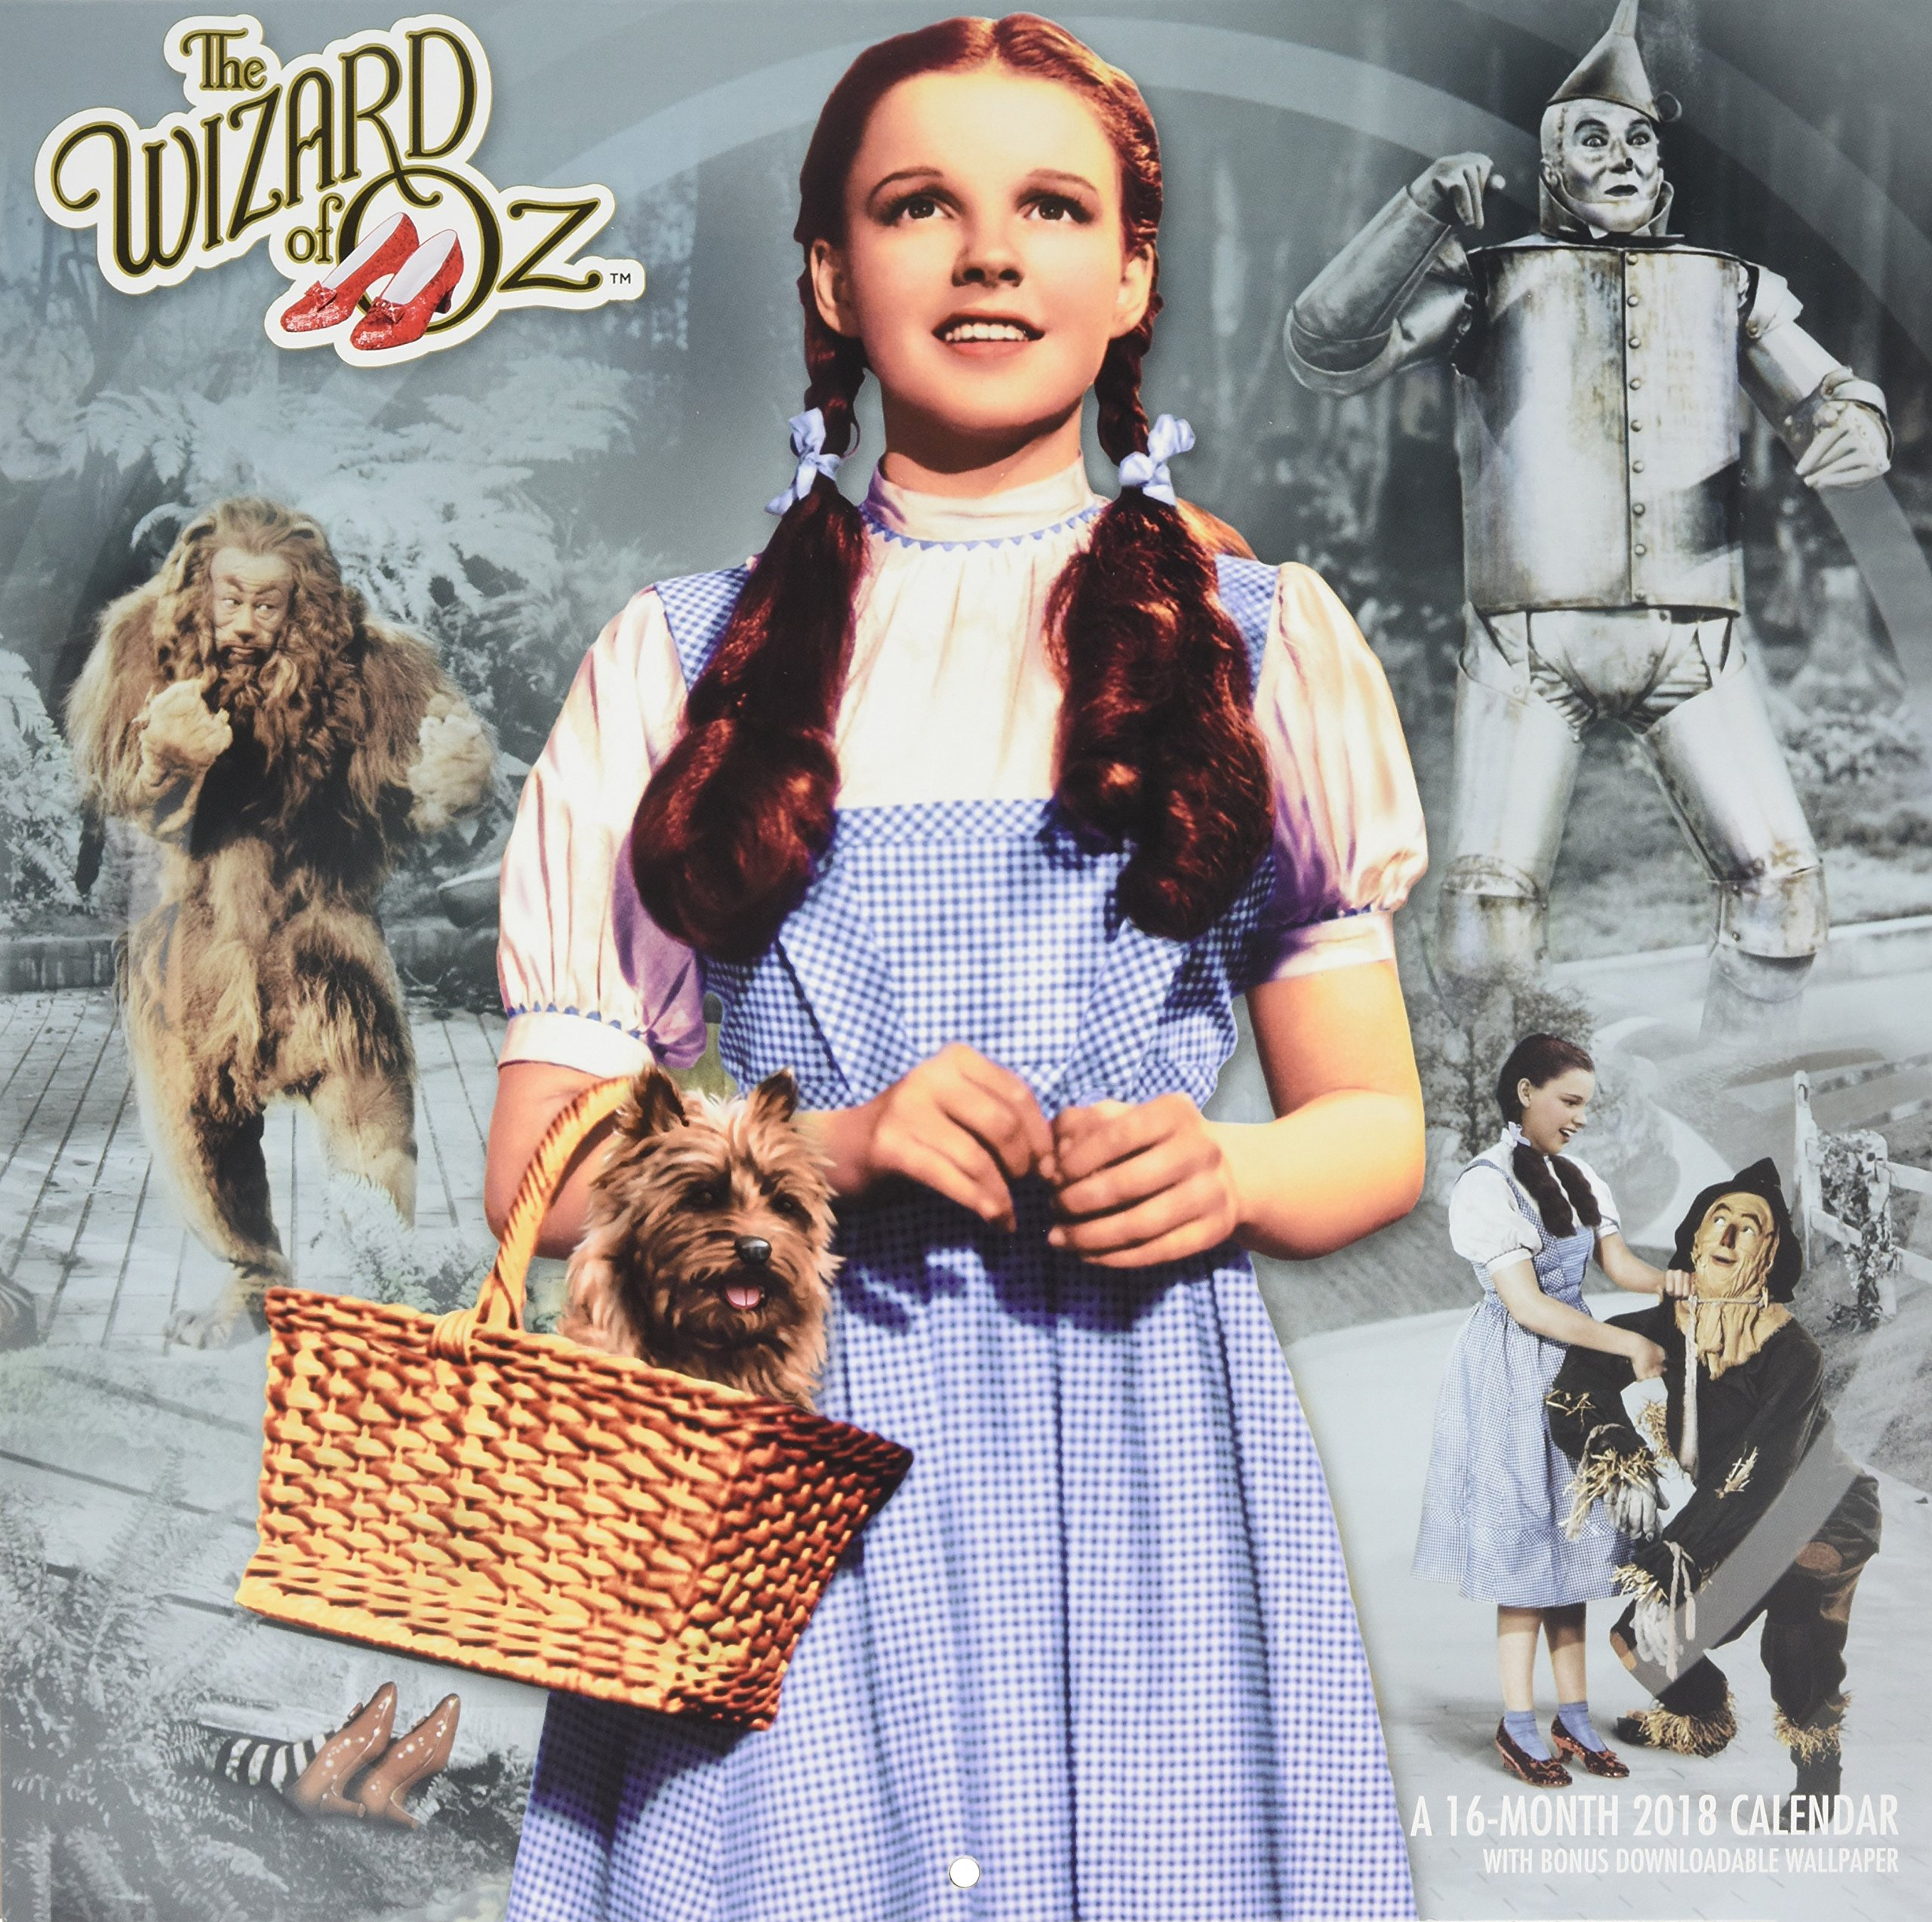 The Wizard Of Oz 2018 Calendar With Bonus Downloadable Wallpaper